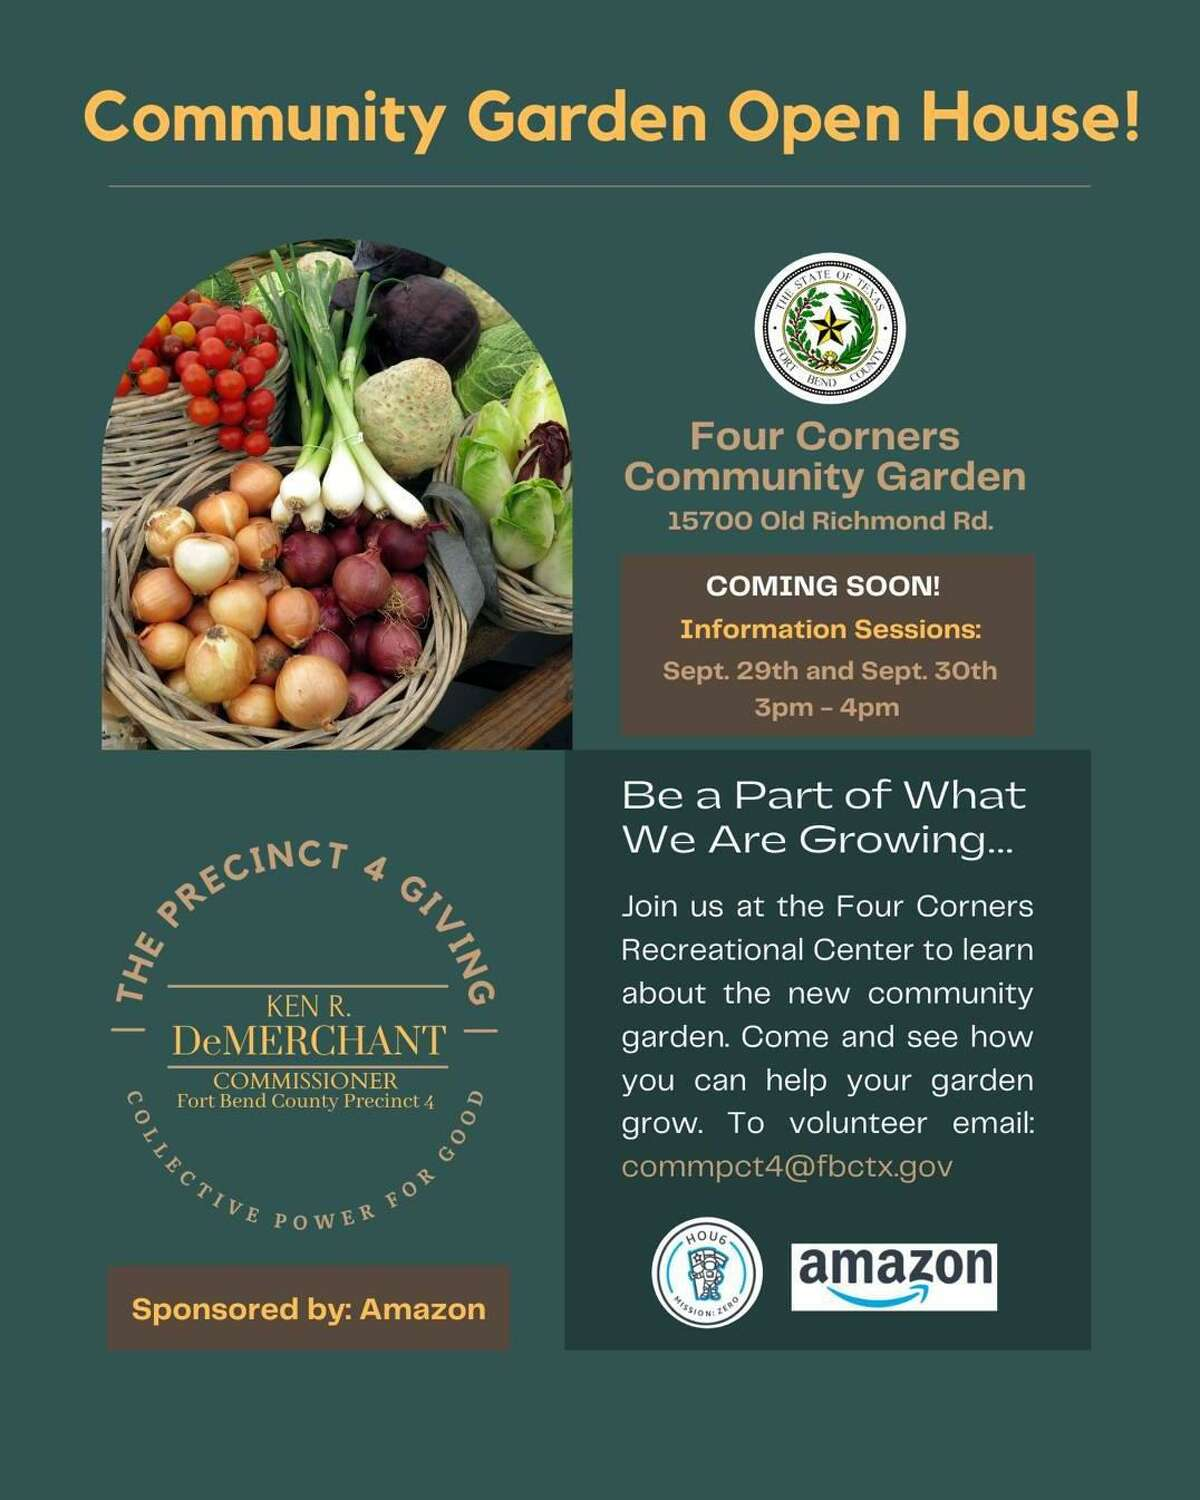 The Four Corners Community Garden is expected to empower food insecure households in the Four Corners area.